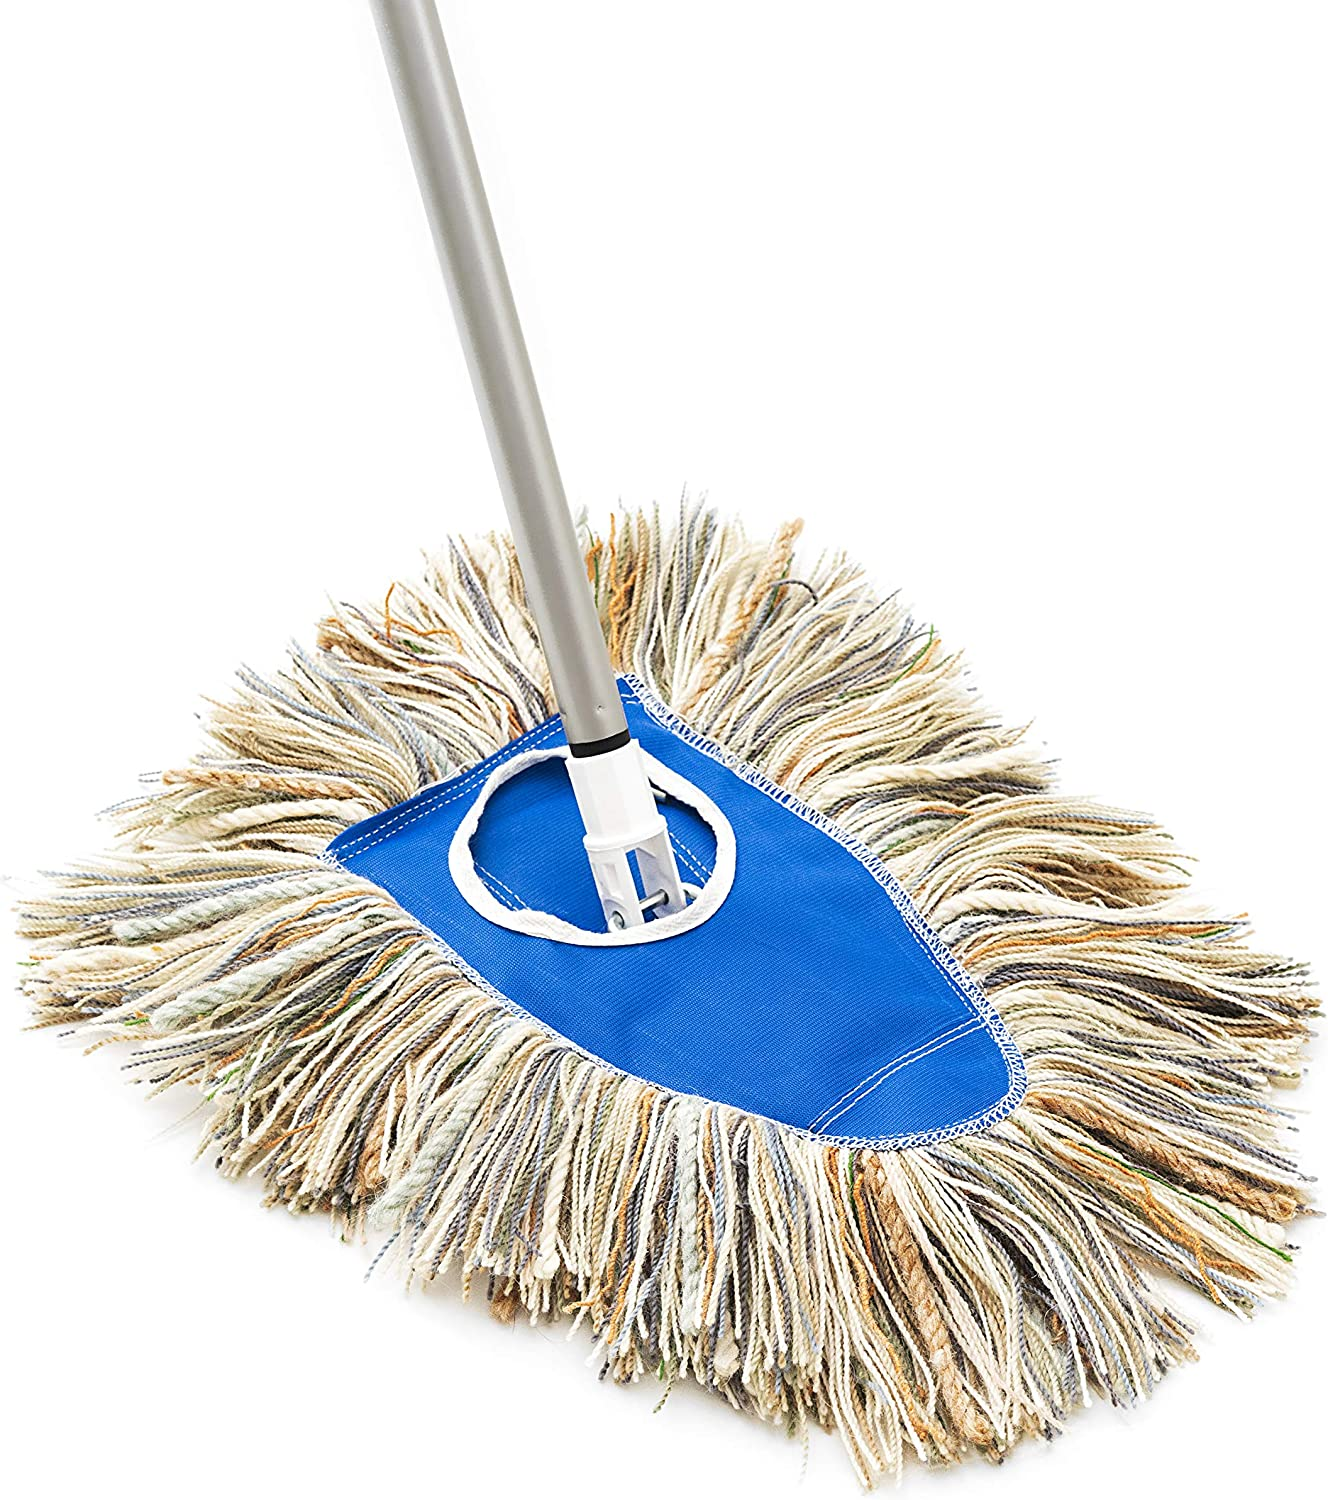 Dry Mop Complete Fuller Brush Dry Mop Head With Frame /& Adjustable Telescopic Handle